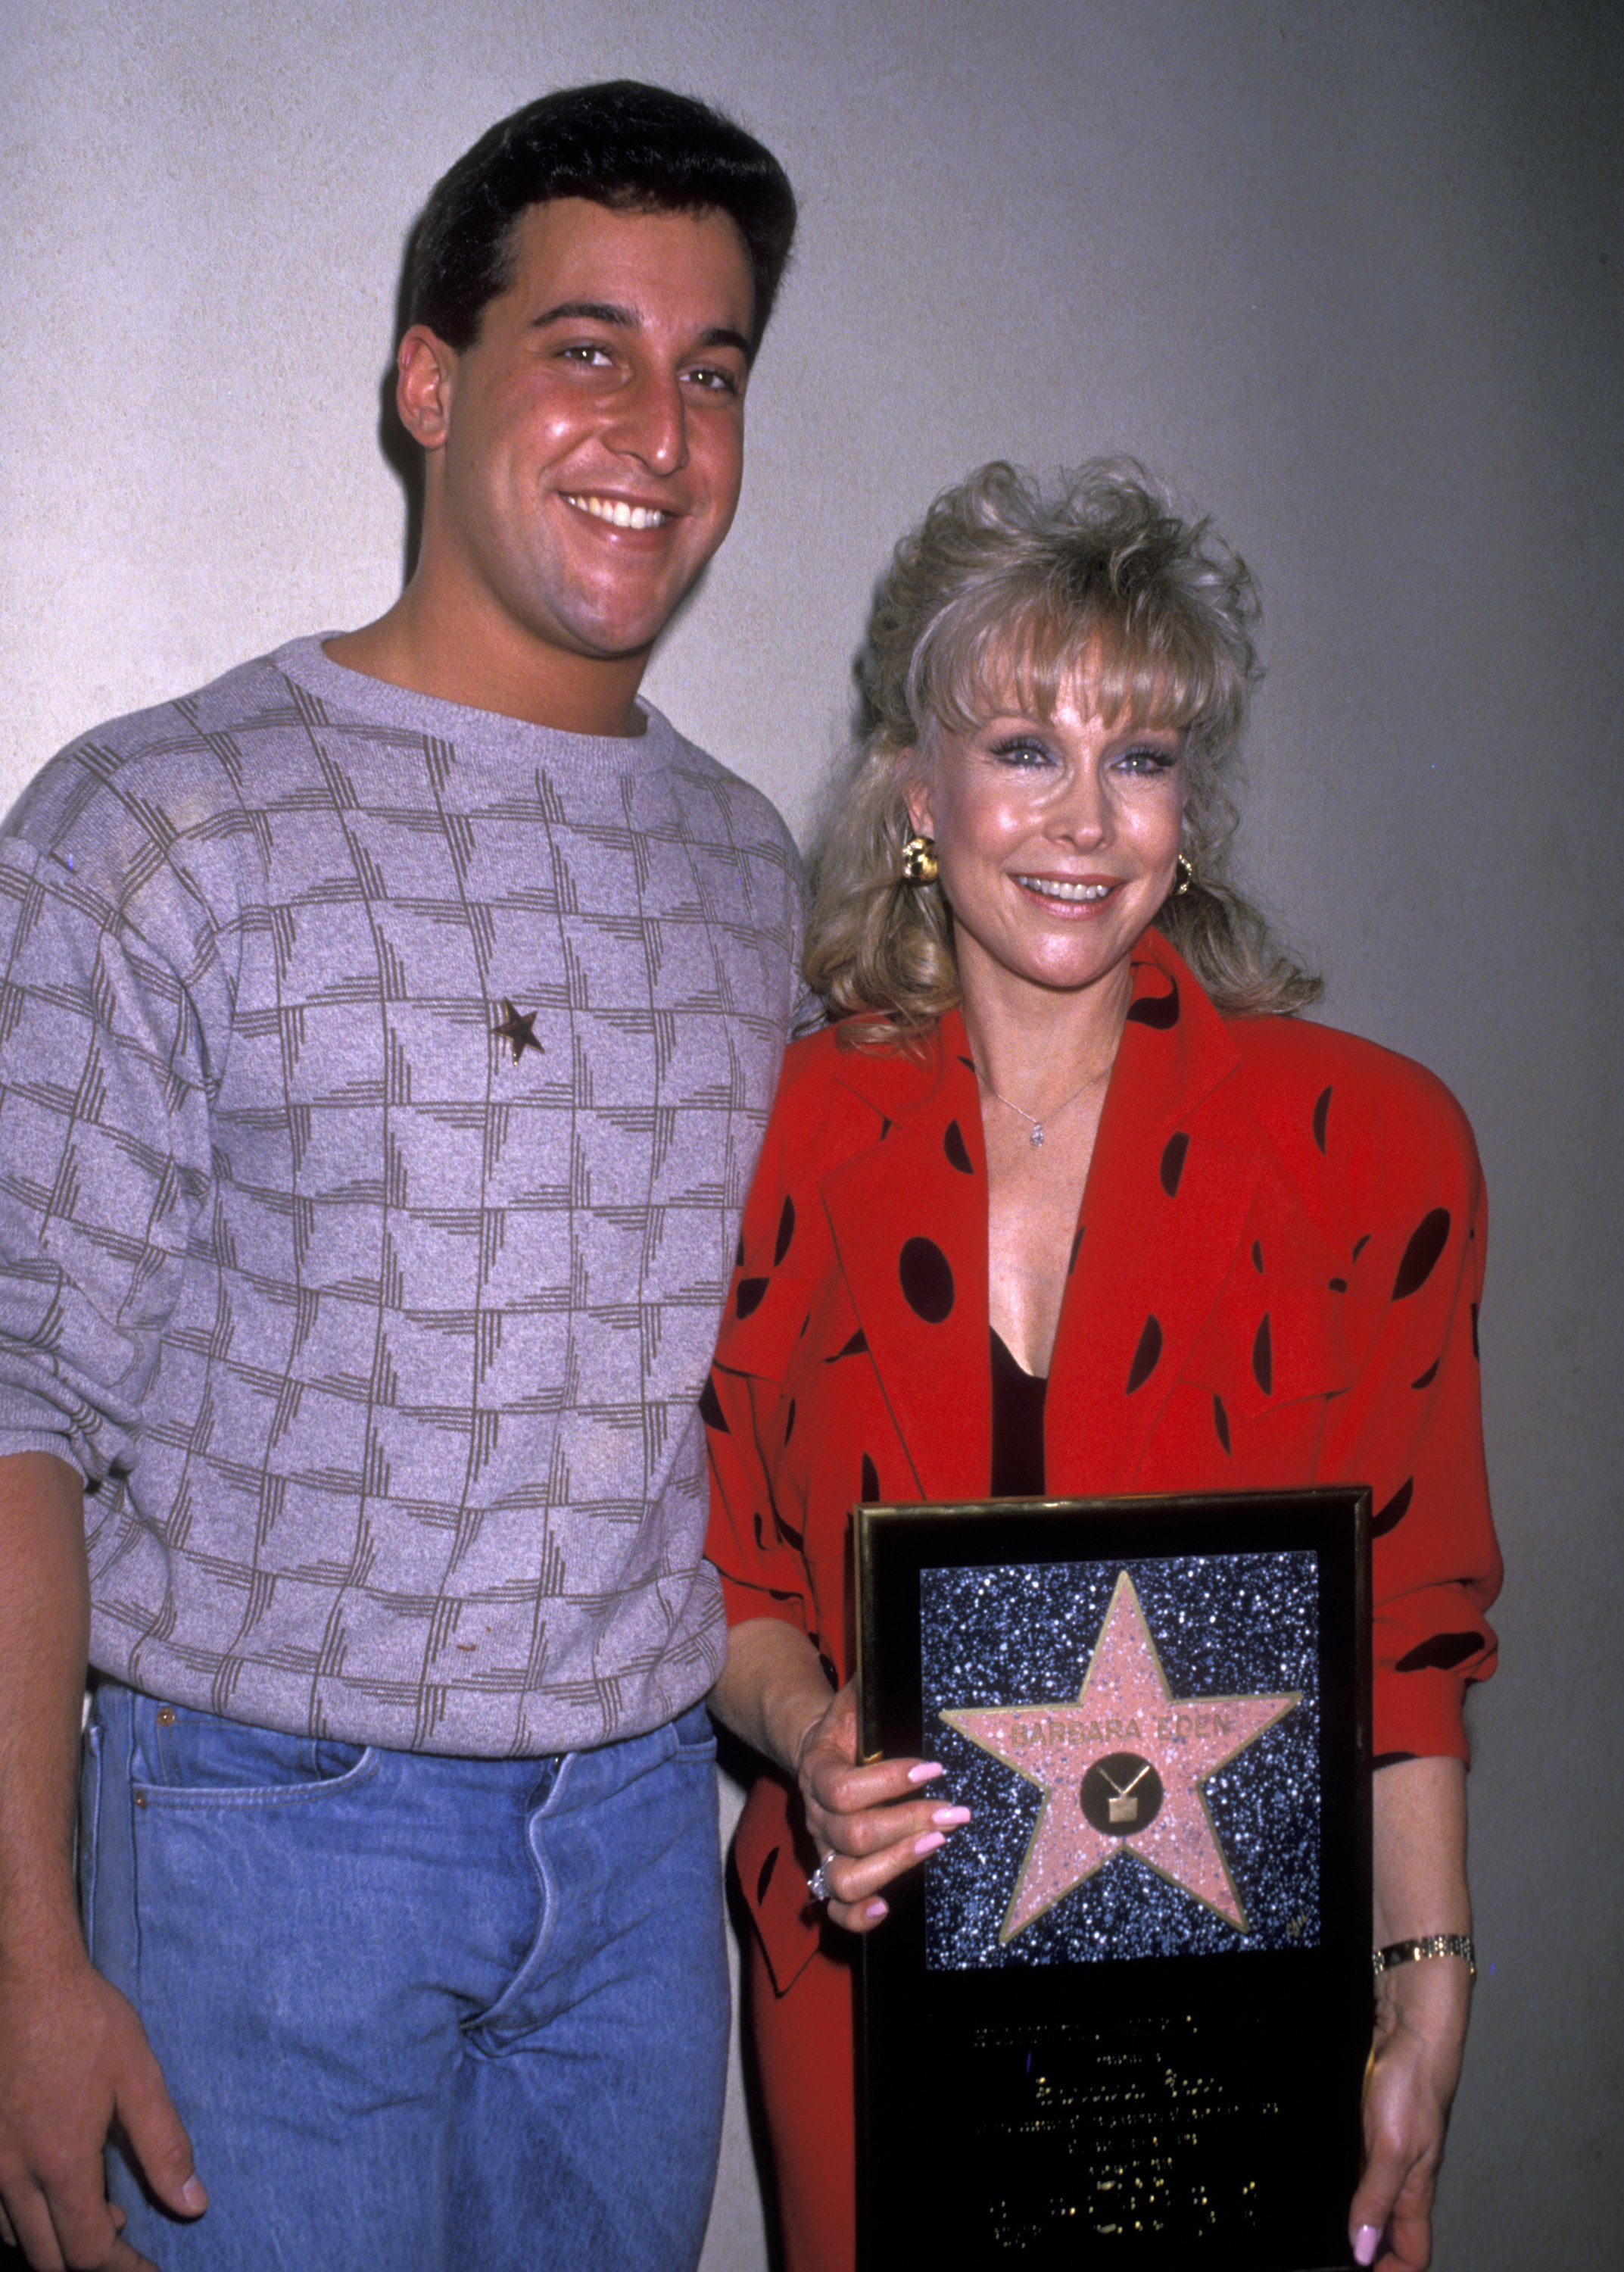 """Actress Barbara Eden and son Matthew Ansara attend the """"Hollywood Walk of Fame Ceremony Honoring Barbara Eden with a Star"""" on November 17, 1988 at 7003 Hollywood Boulevard in Hollywood, California   Photo: Getty Images"""